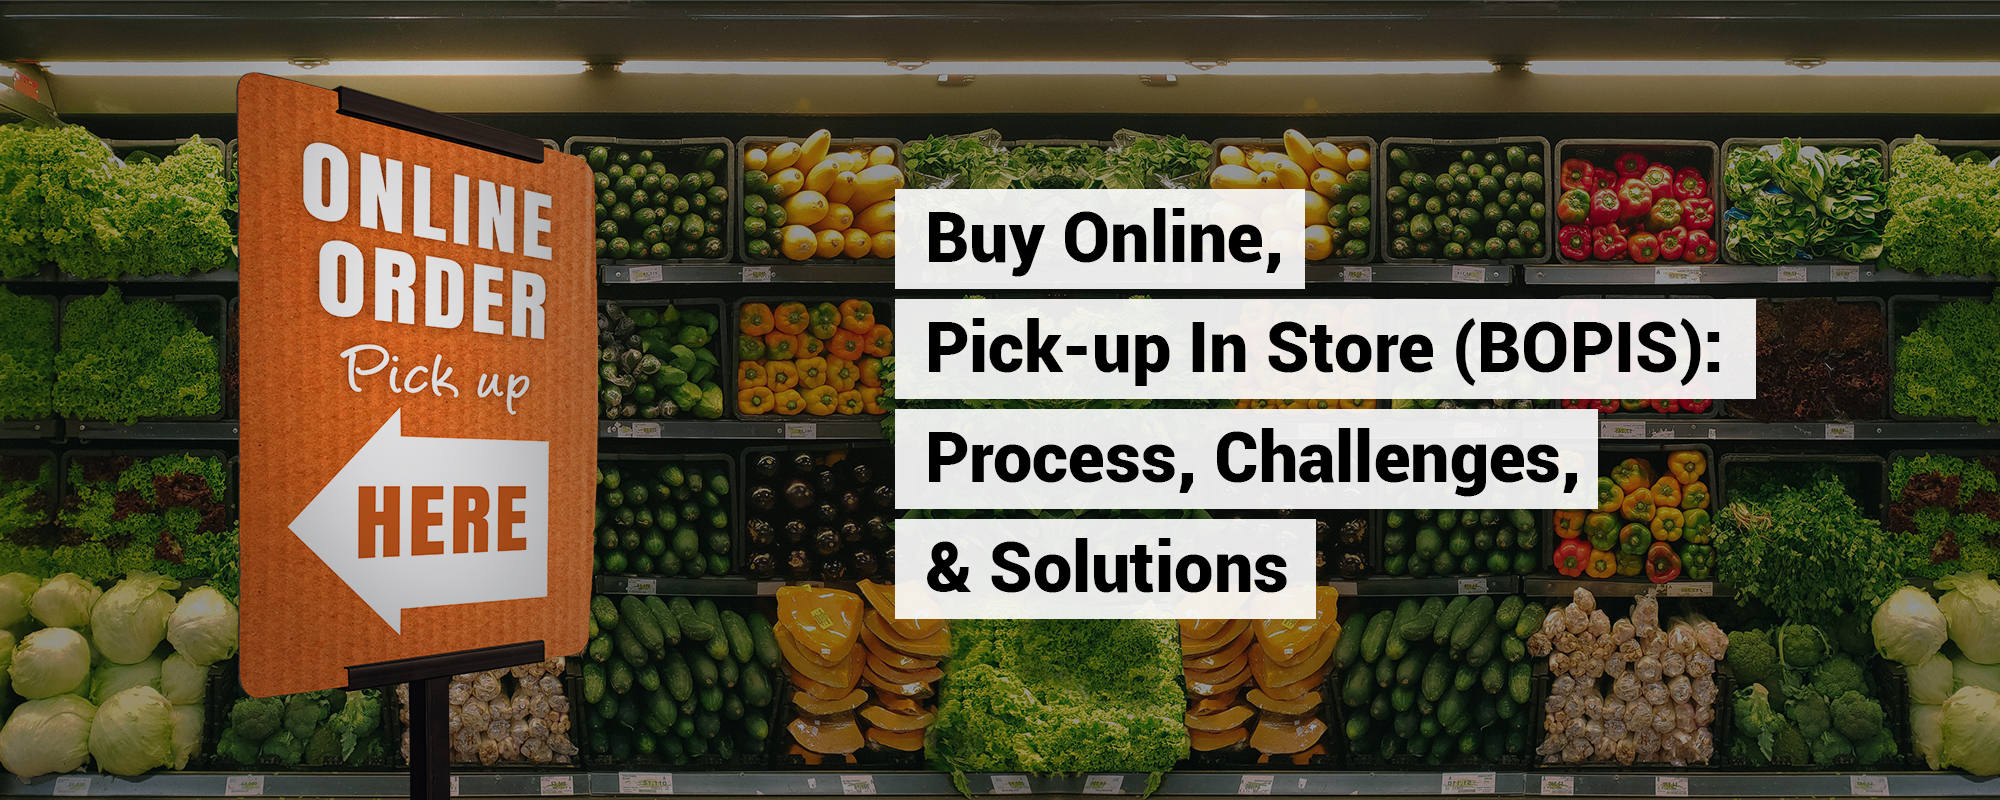 Buy Online, Pick-up In Store (Click and Collect) Shopping: Creating an Omnichannel Experience in Grocery Retail Industry